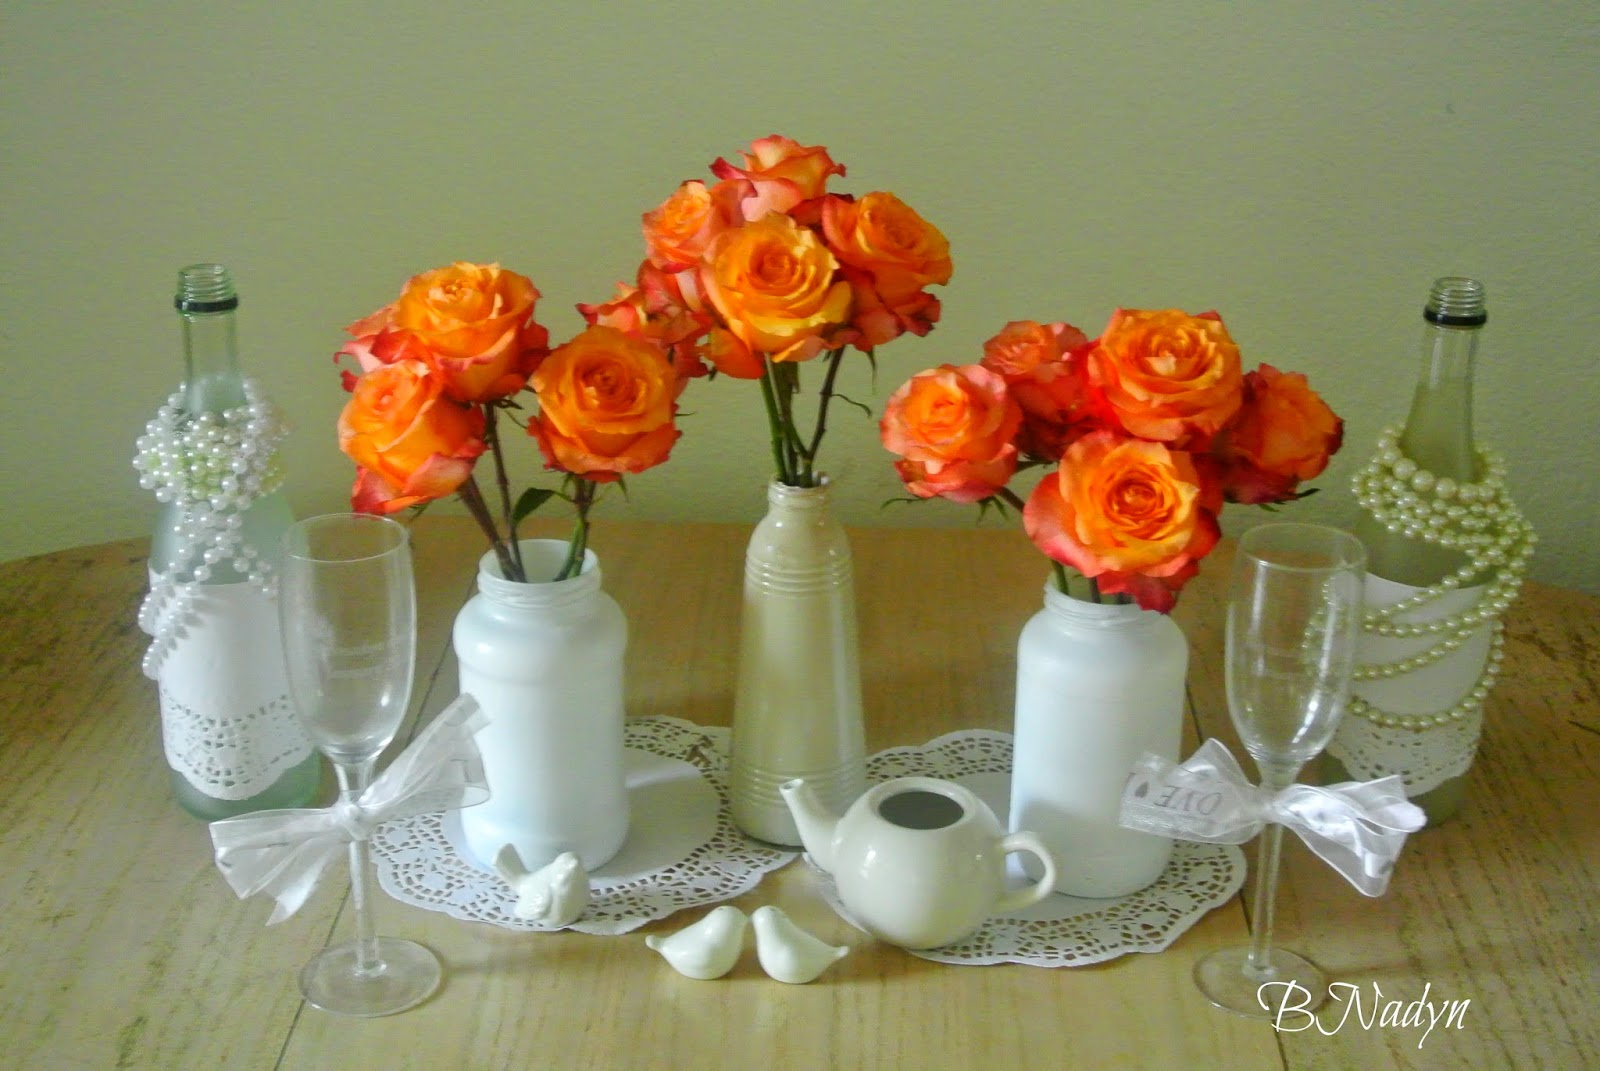 Roses, bouquet, wedding table setting